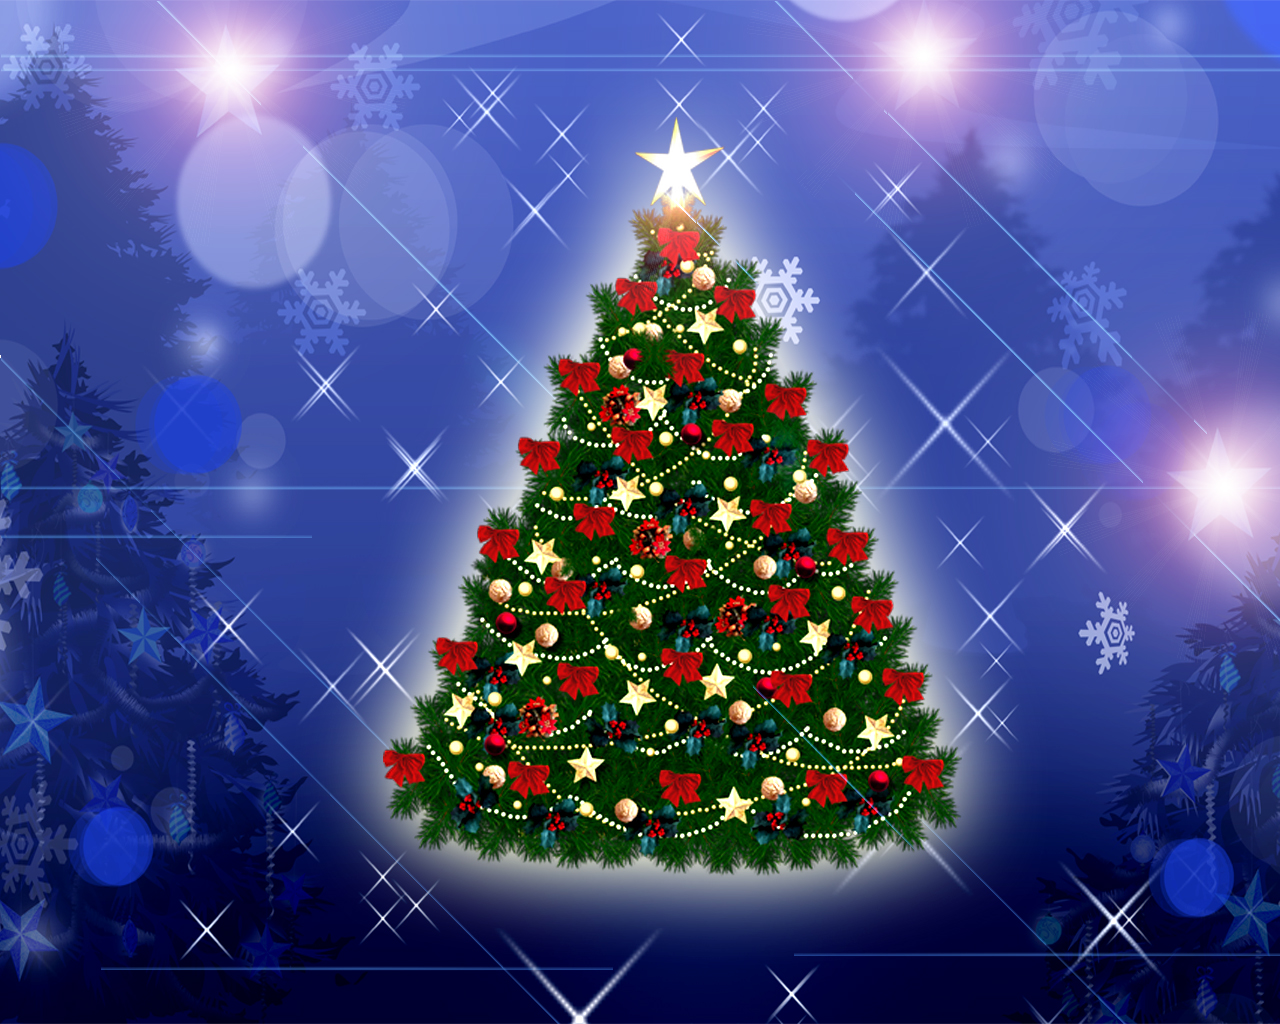 1280x1024 Christmas Tree desktop PC and Mac wallpaper